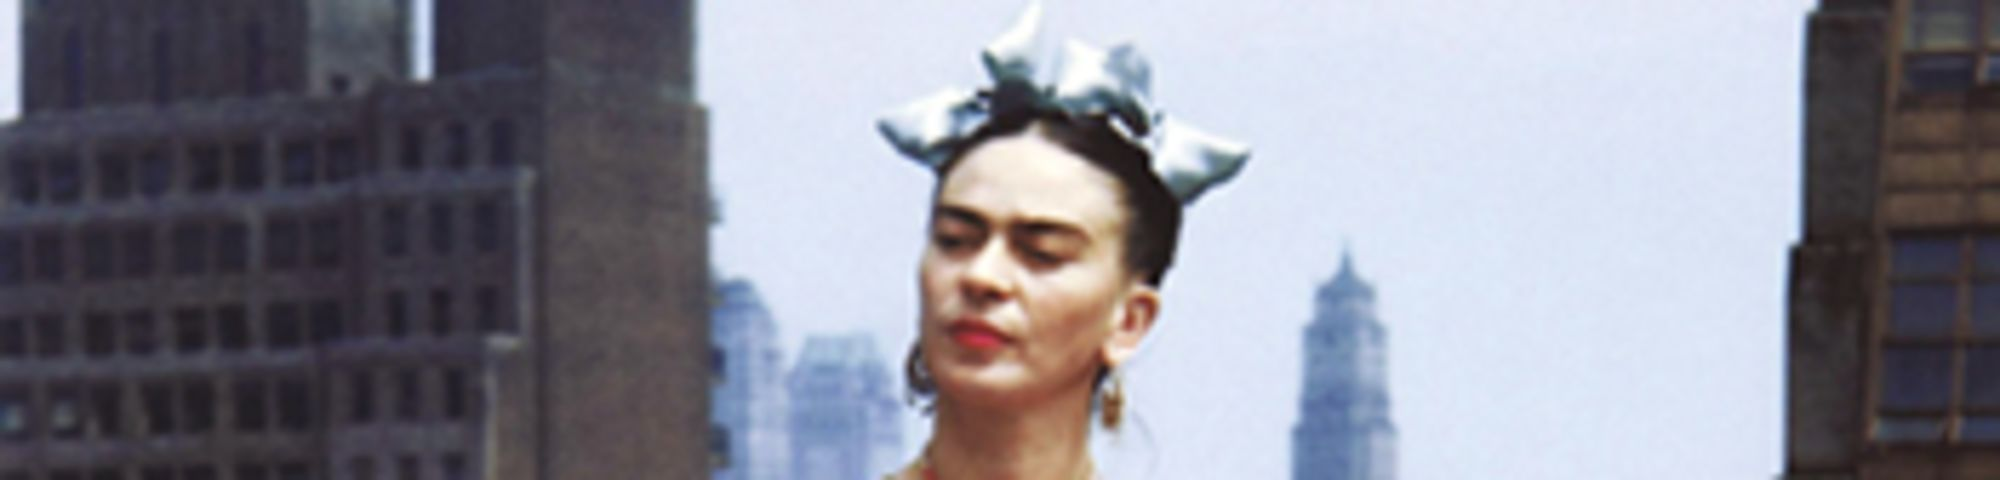 Kahlo in Tehuana dress on a New York City rooftop, 1939 by Nickolas Muray